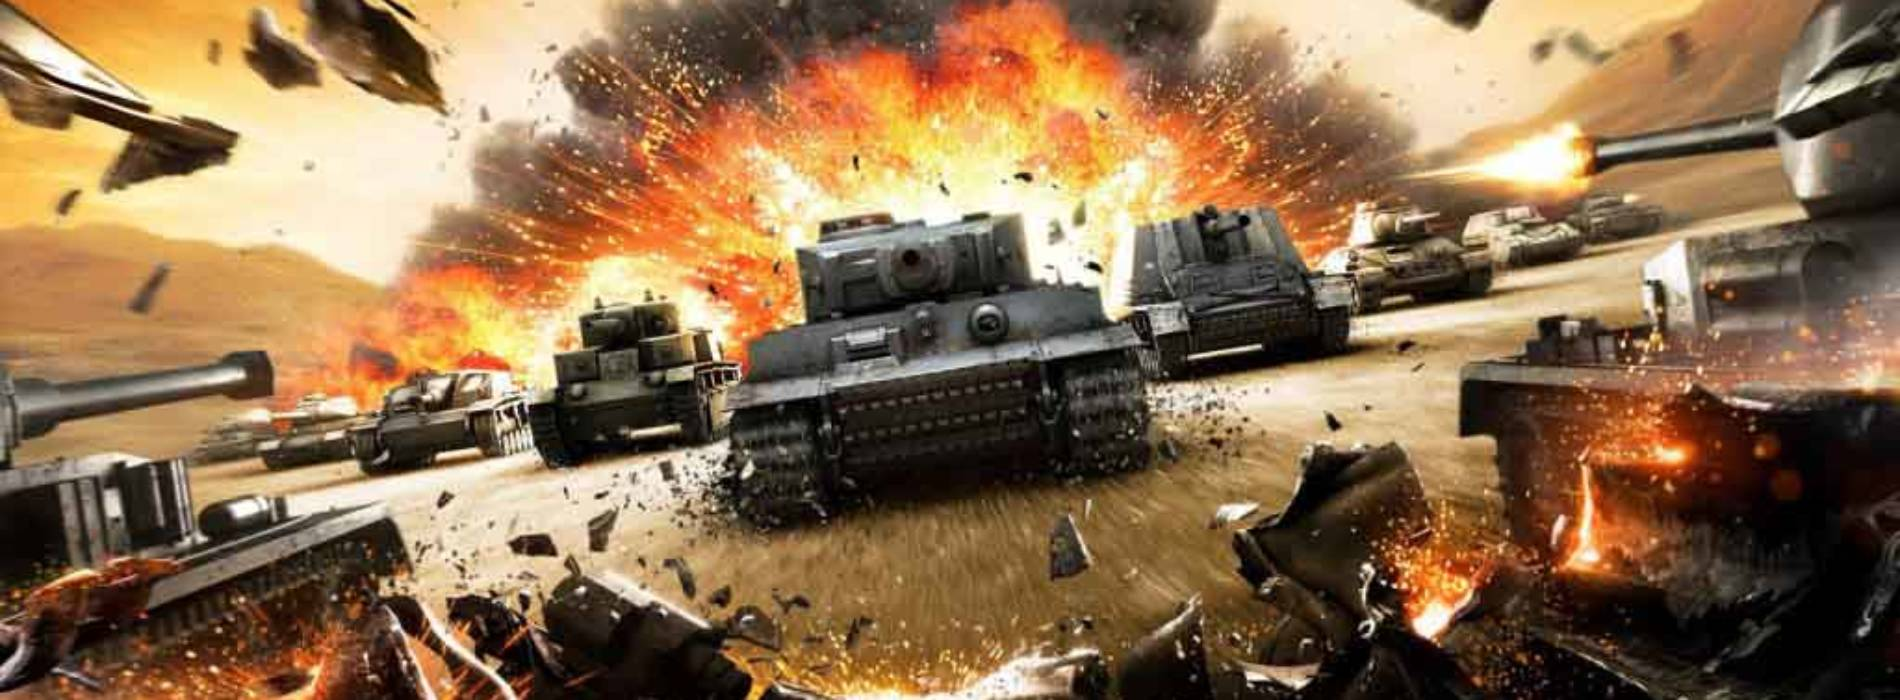 Regalamos 2.000 códigos para World of Tanks de 10 euros